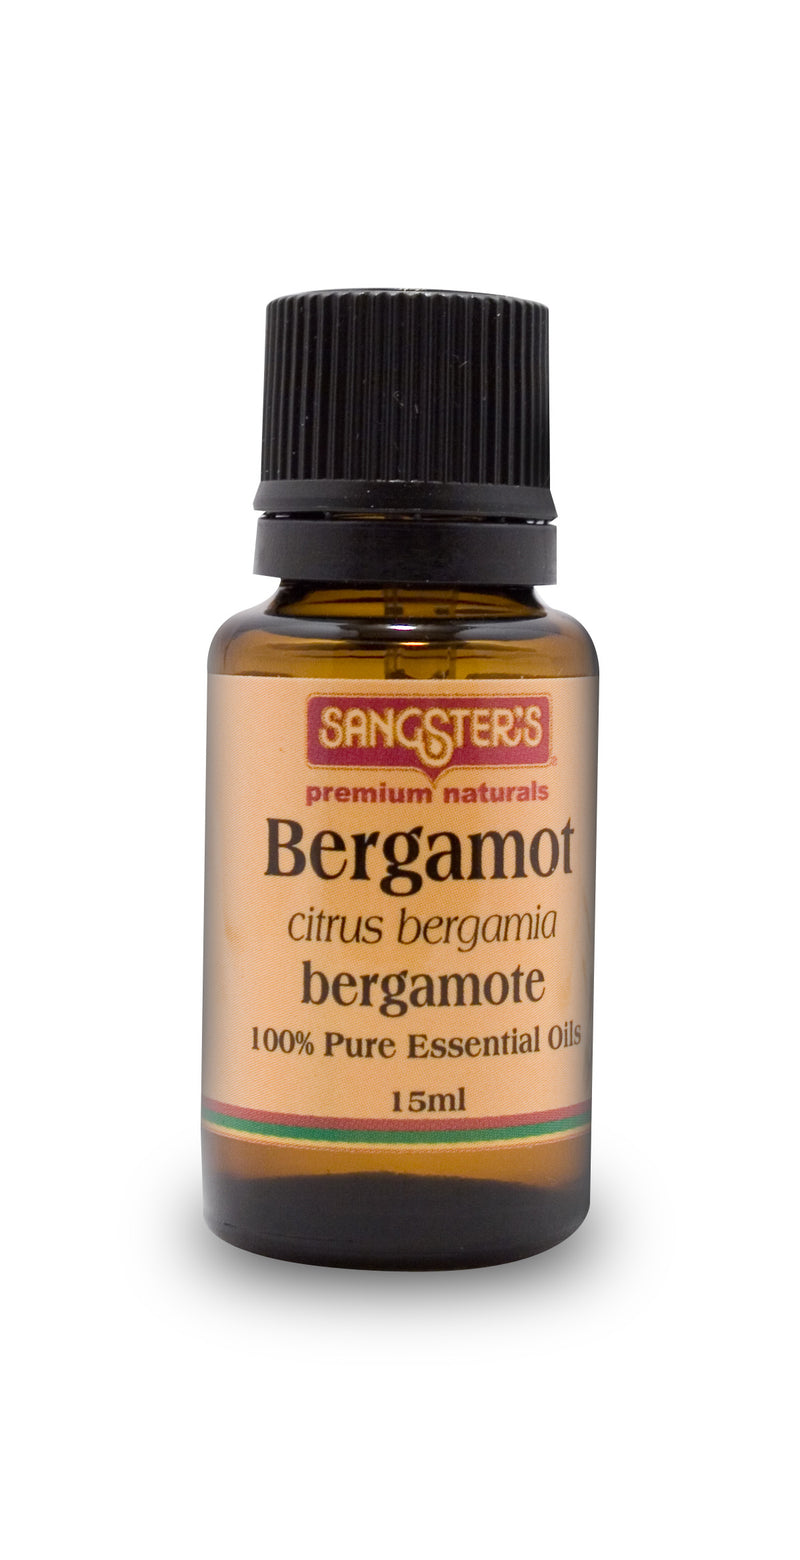 Sangster's Bergamot 100% Pure Essential Oil 15ml